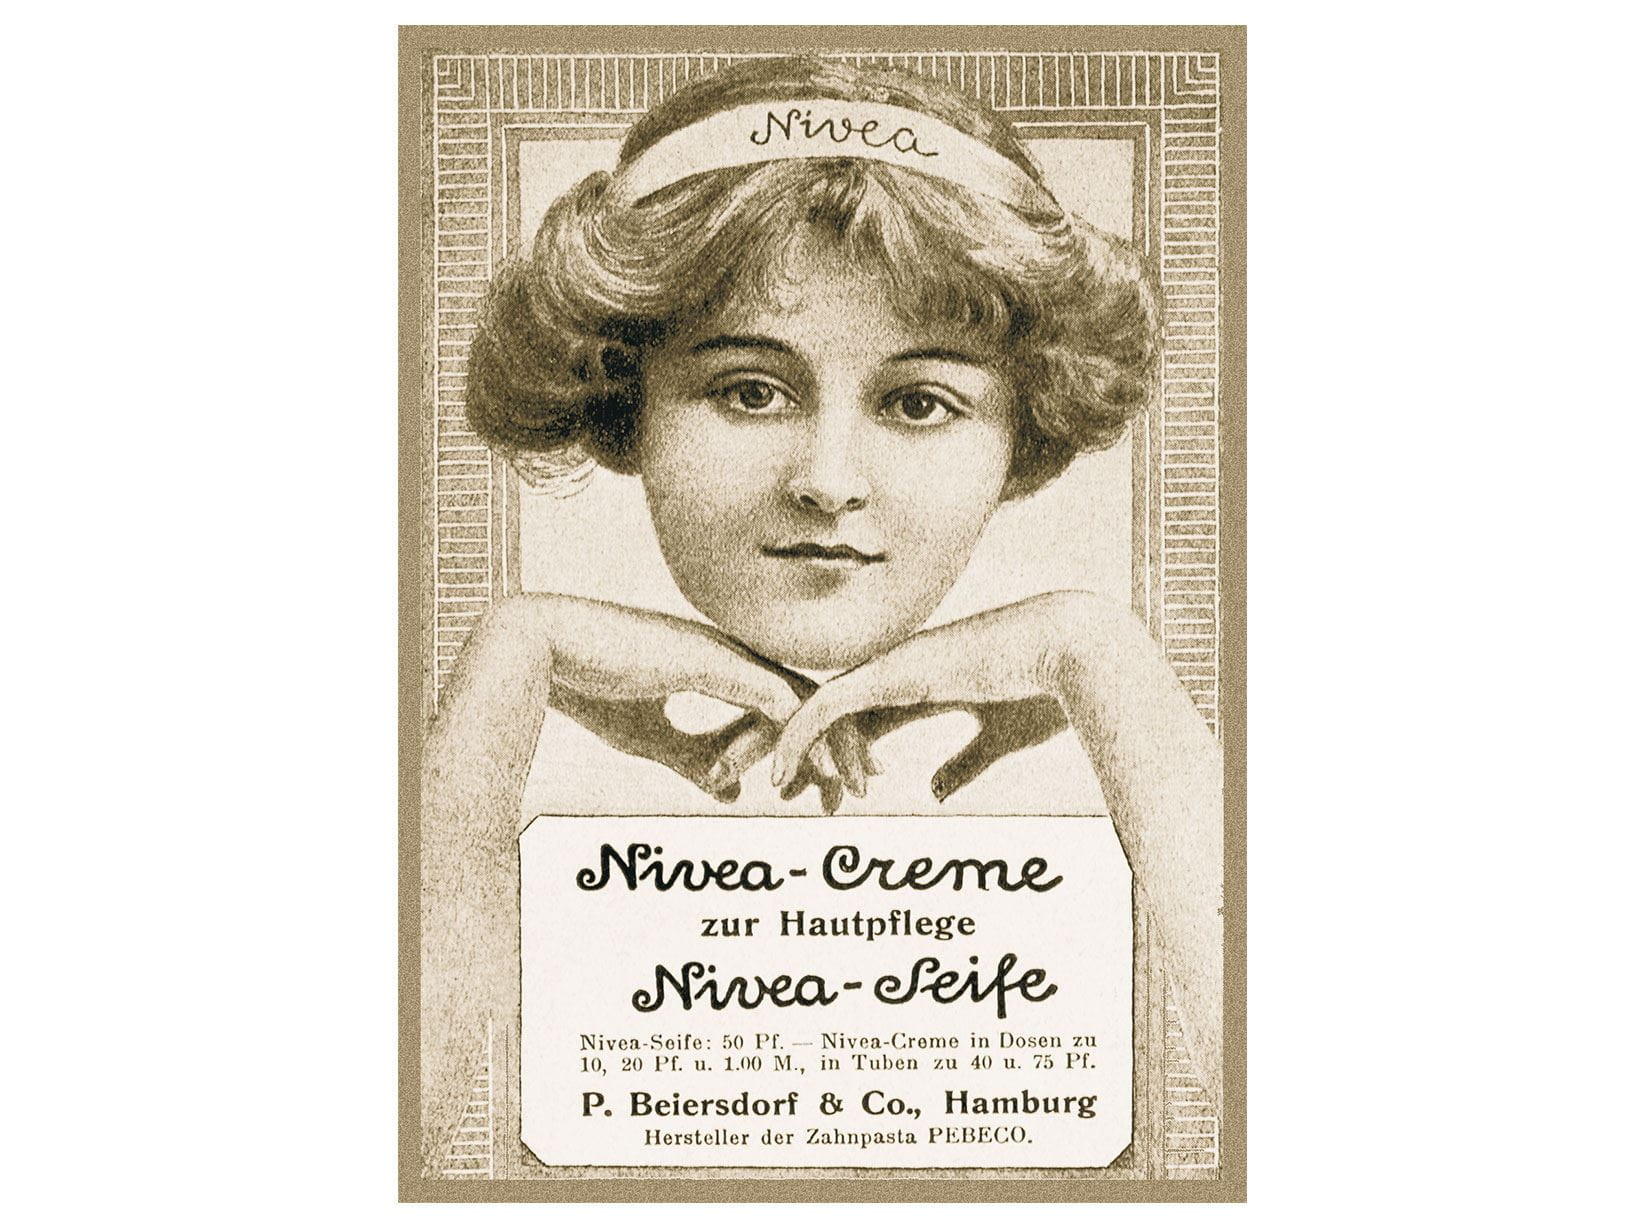 nivea creme in 1911 and 1912